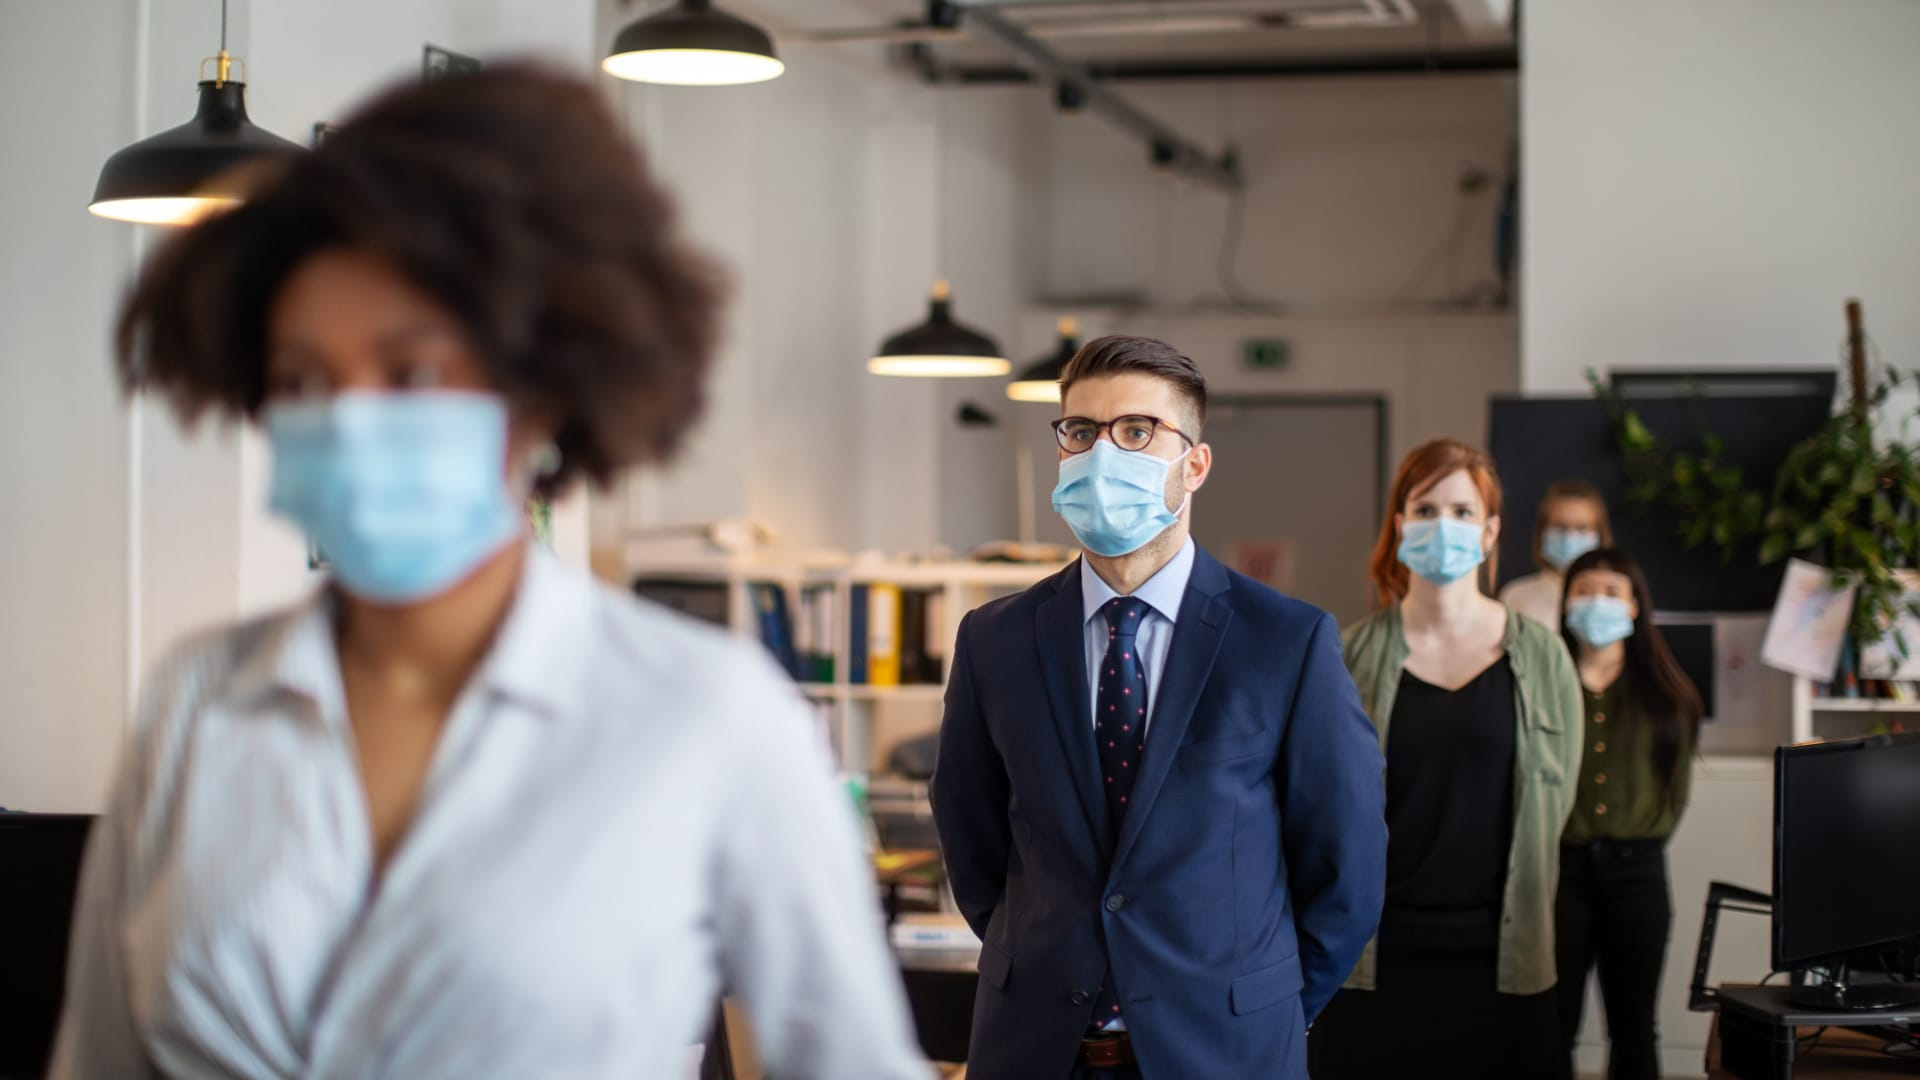 An Epidemiologist on How to Plan a Return to the Office